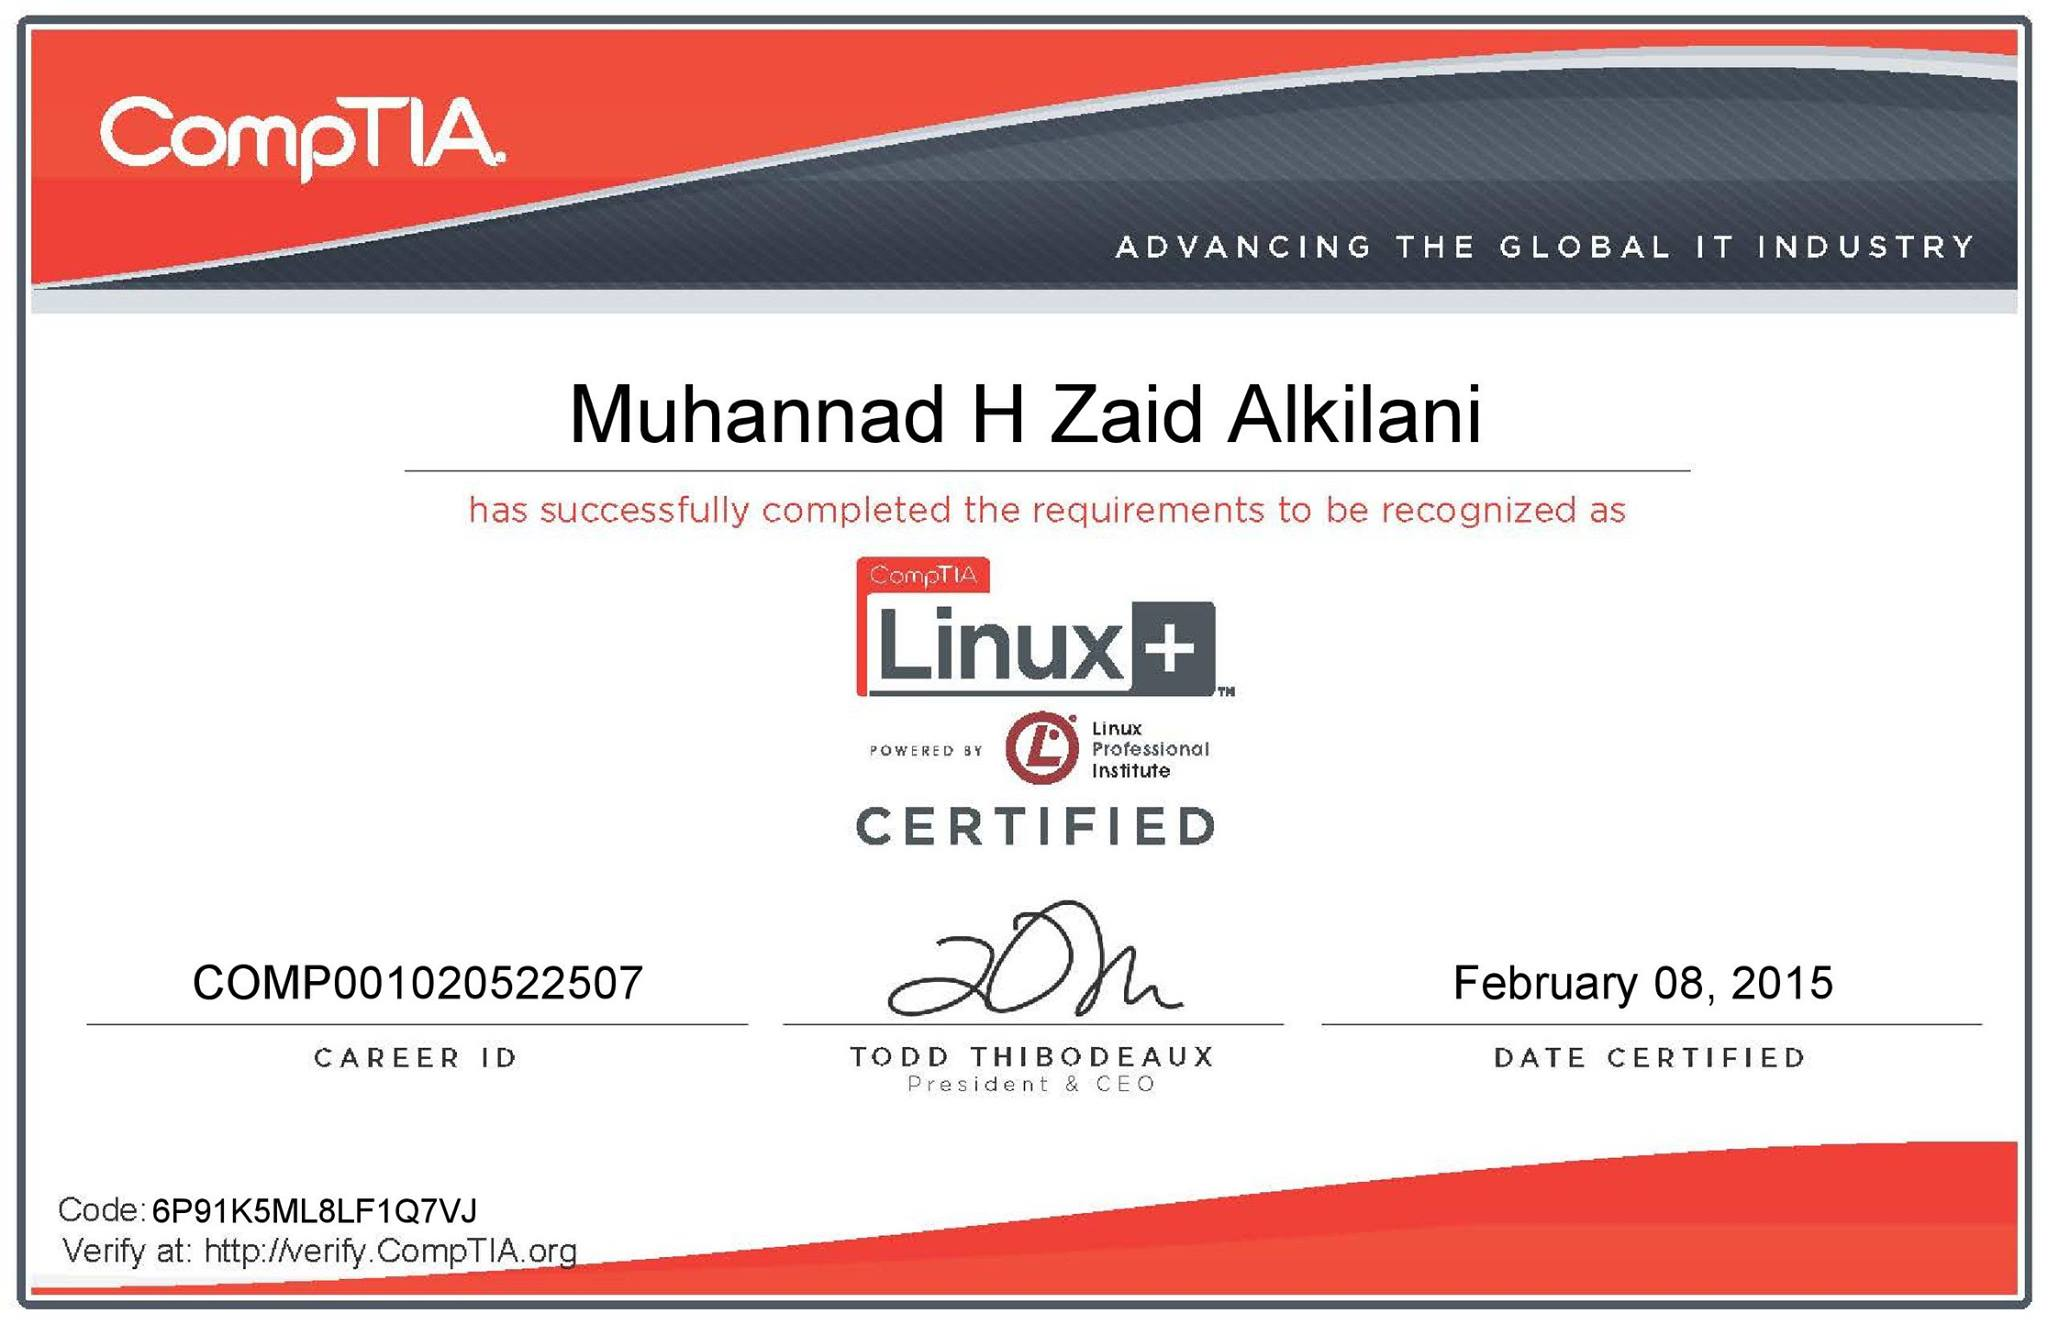 Career history information technology it telecommunications career history information technology it telecommunications cisco networking engineer muhannad kilani cyberoam itil ccna ccnsp ccnp certified xflitez Image collections